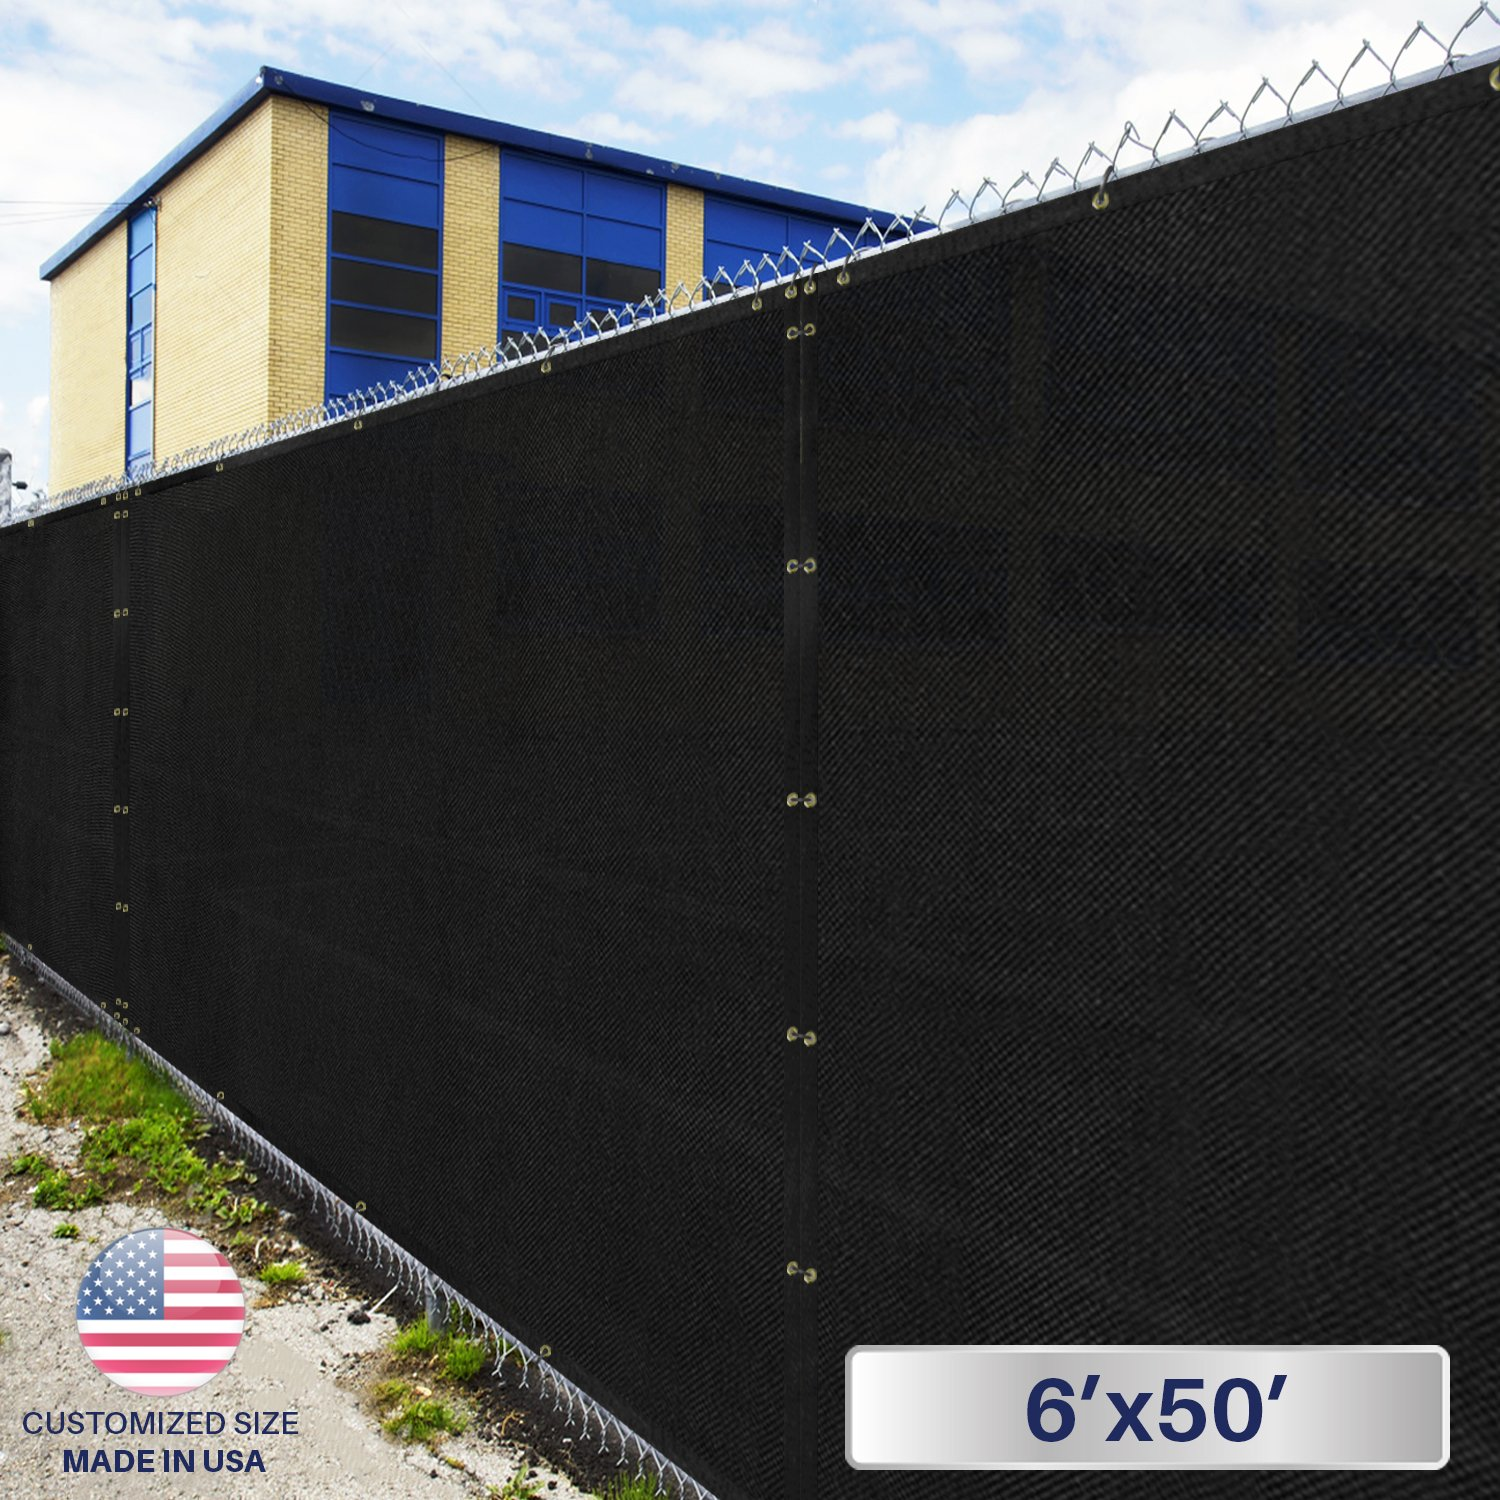 Windscreen4less Heavy Duty Privacy Screen Fence In Color Solid Black 6u0027 X  50u0027 Brass Grommets W/3 Year Warranty 140 GSM (Customized Sizes Available)